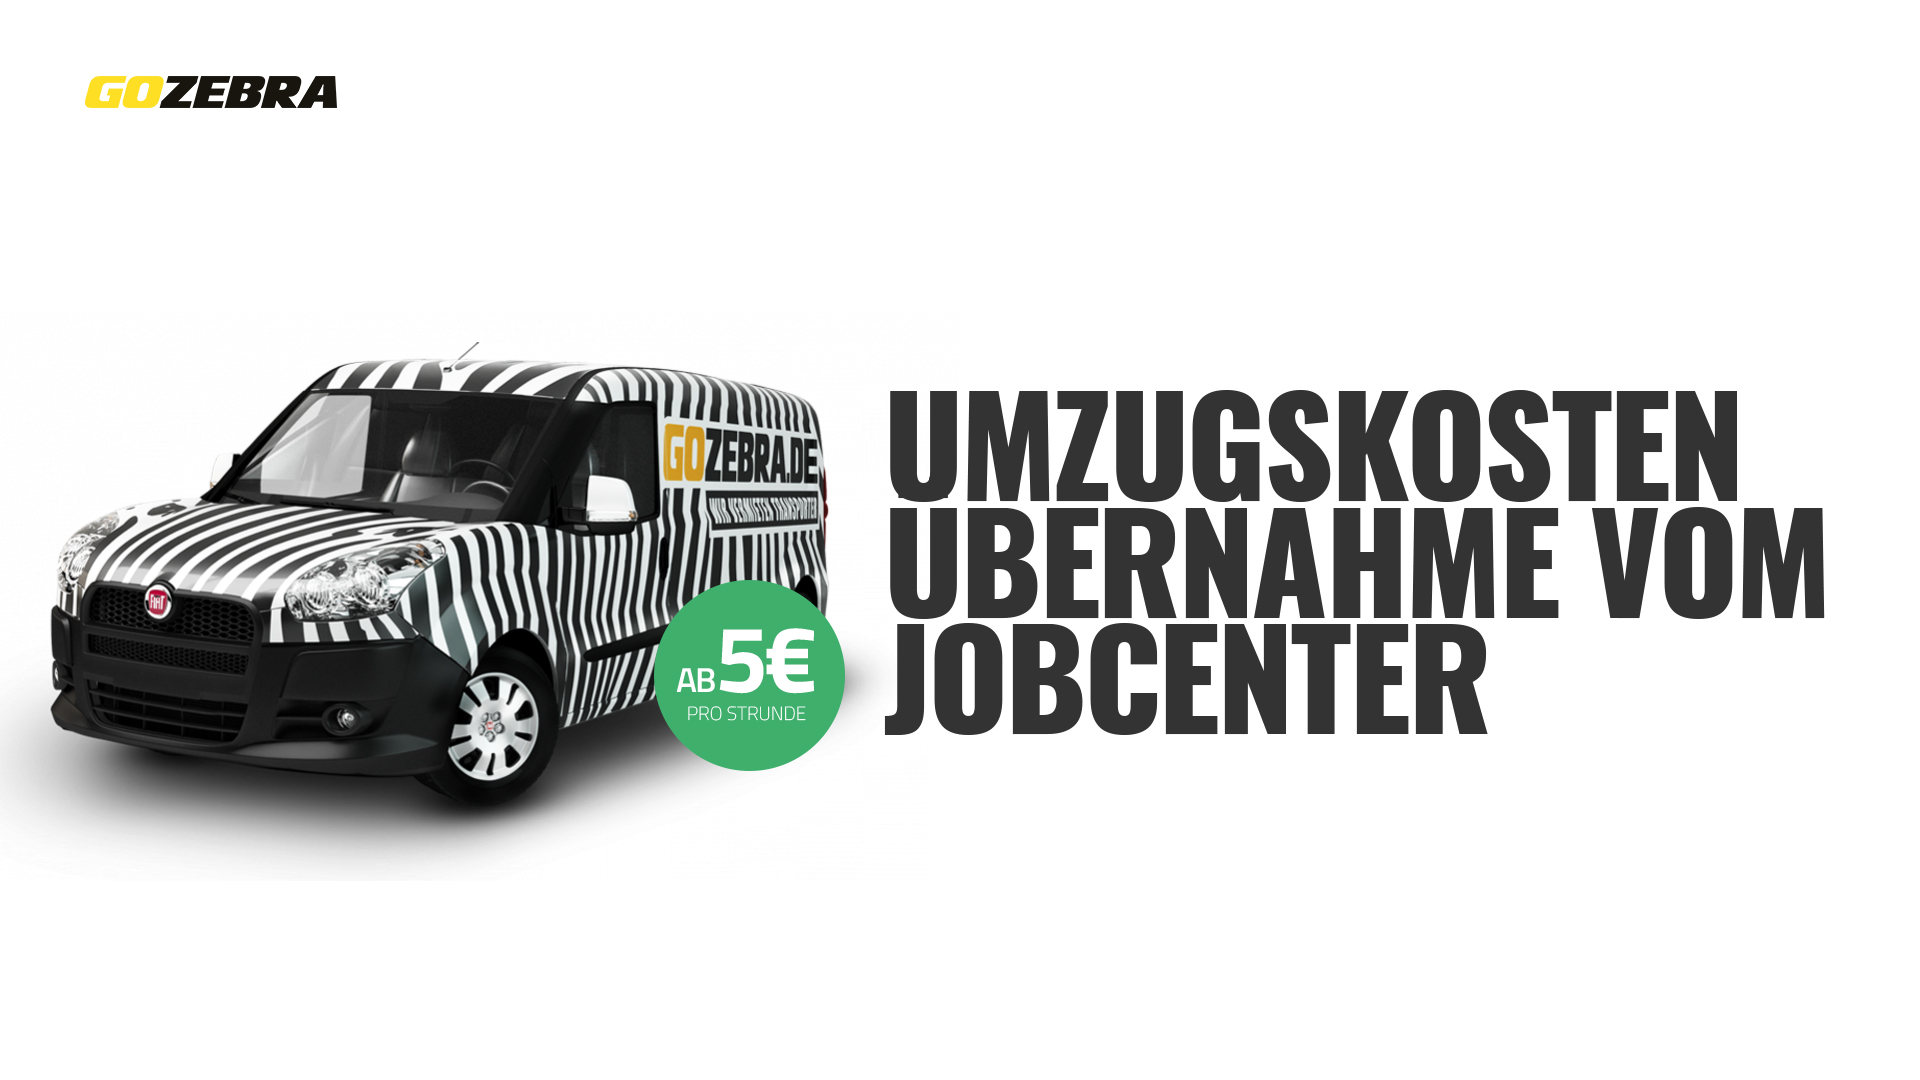 kosten bernahme jobcenter gozebra transporter mieten. Black Bedroom Furniture Sets. Home Design Ideas